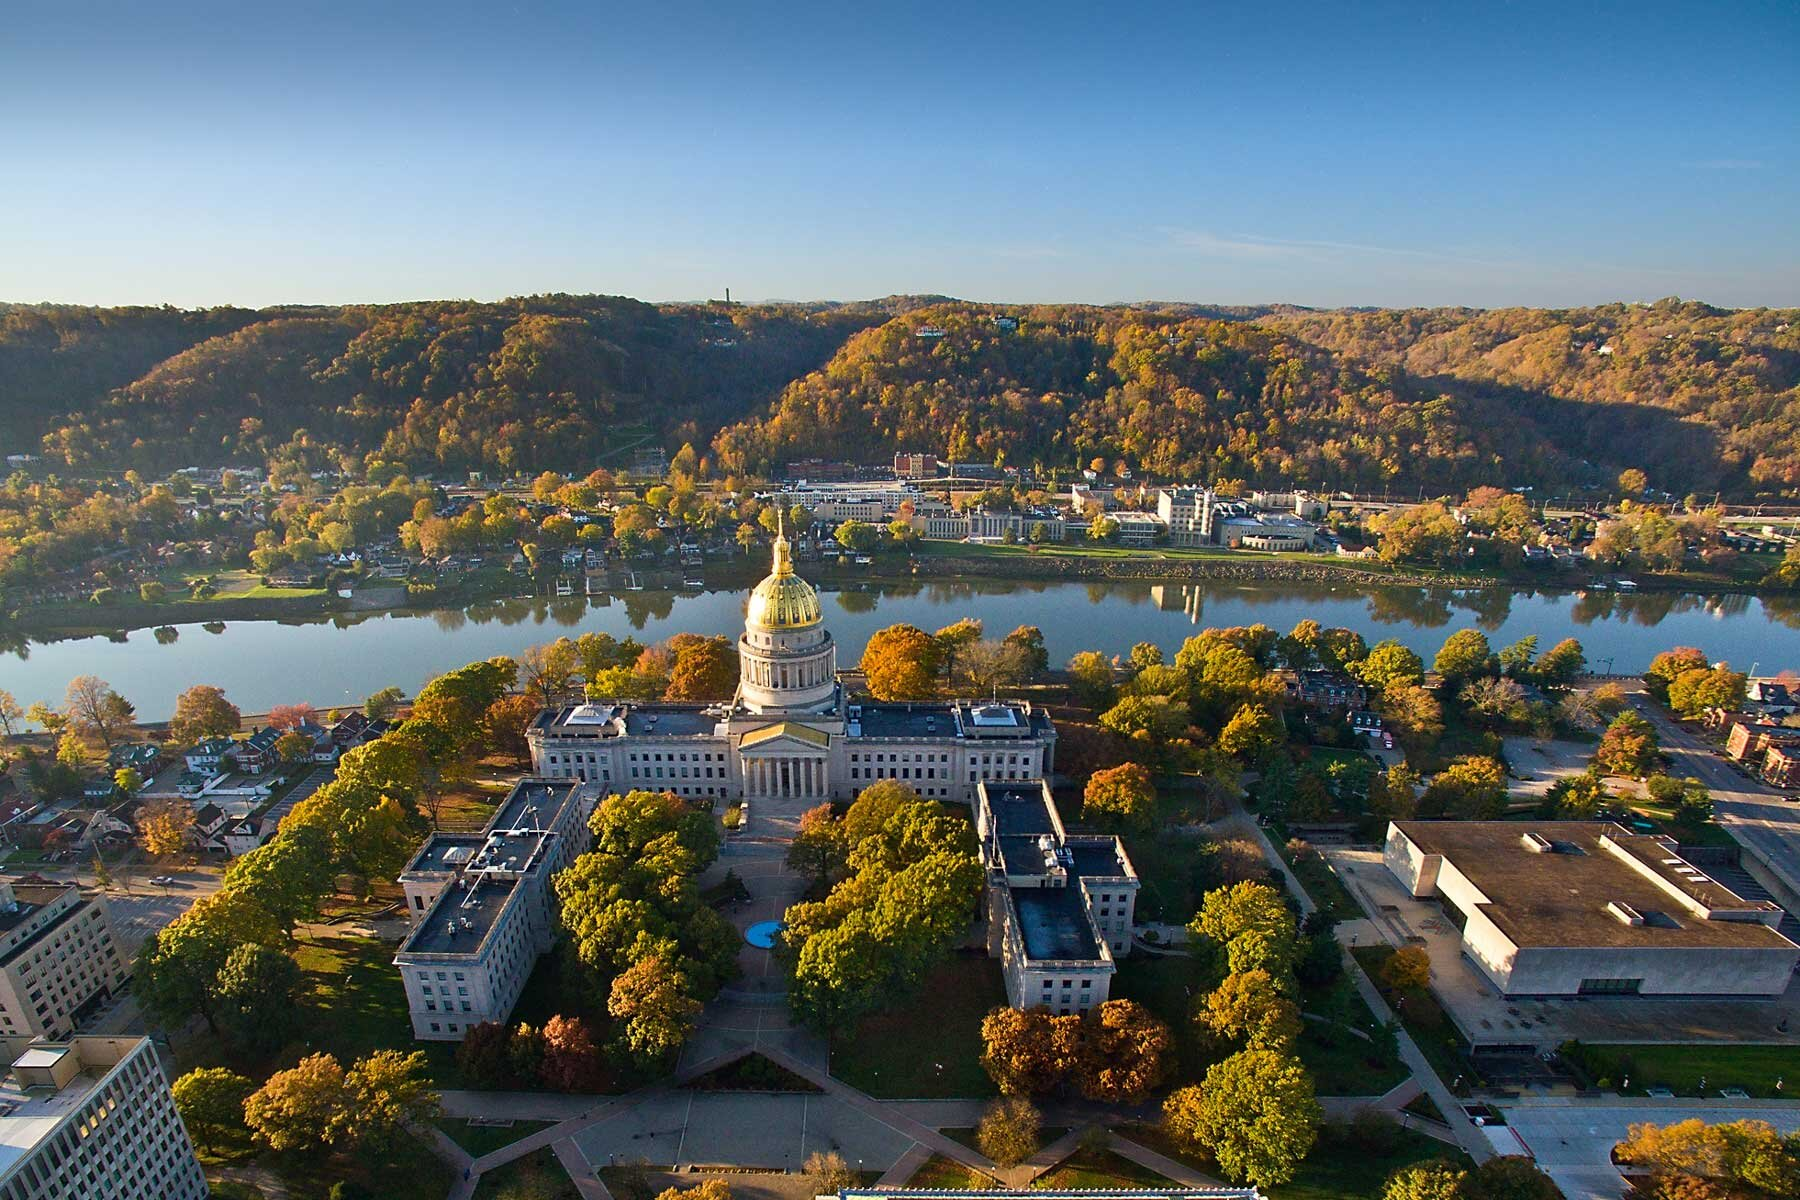 Aerial view of Charleston, West Virginia on a sunny autumn day, showing the river and capitol building